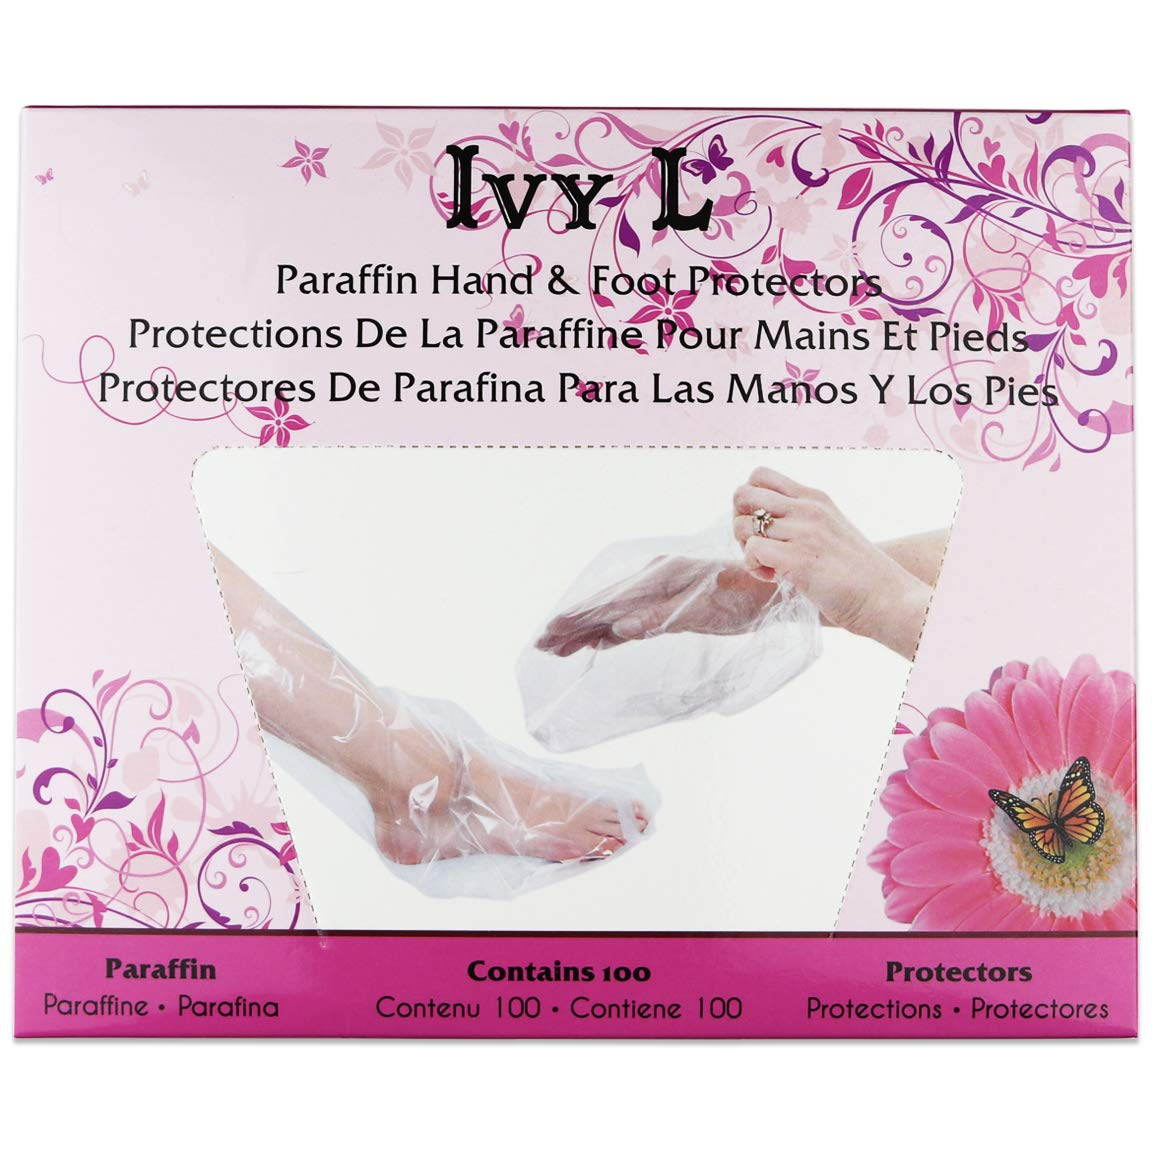 100 Pcs Paraffin Wax Thermal Mitt Plastic Therapy Liner Bags for Hand or Foot - Professional or Personal Home Salon Use, 15 x 10 Inches